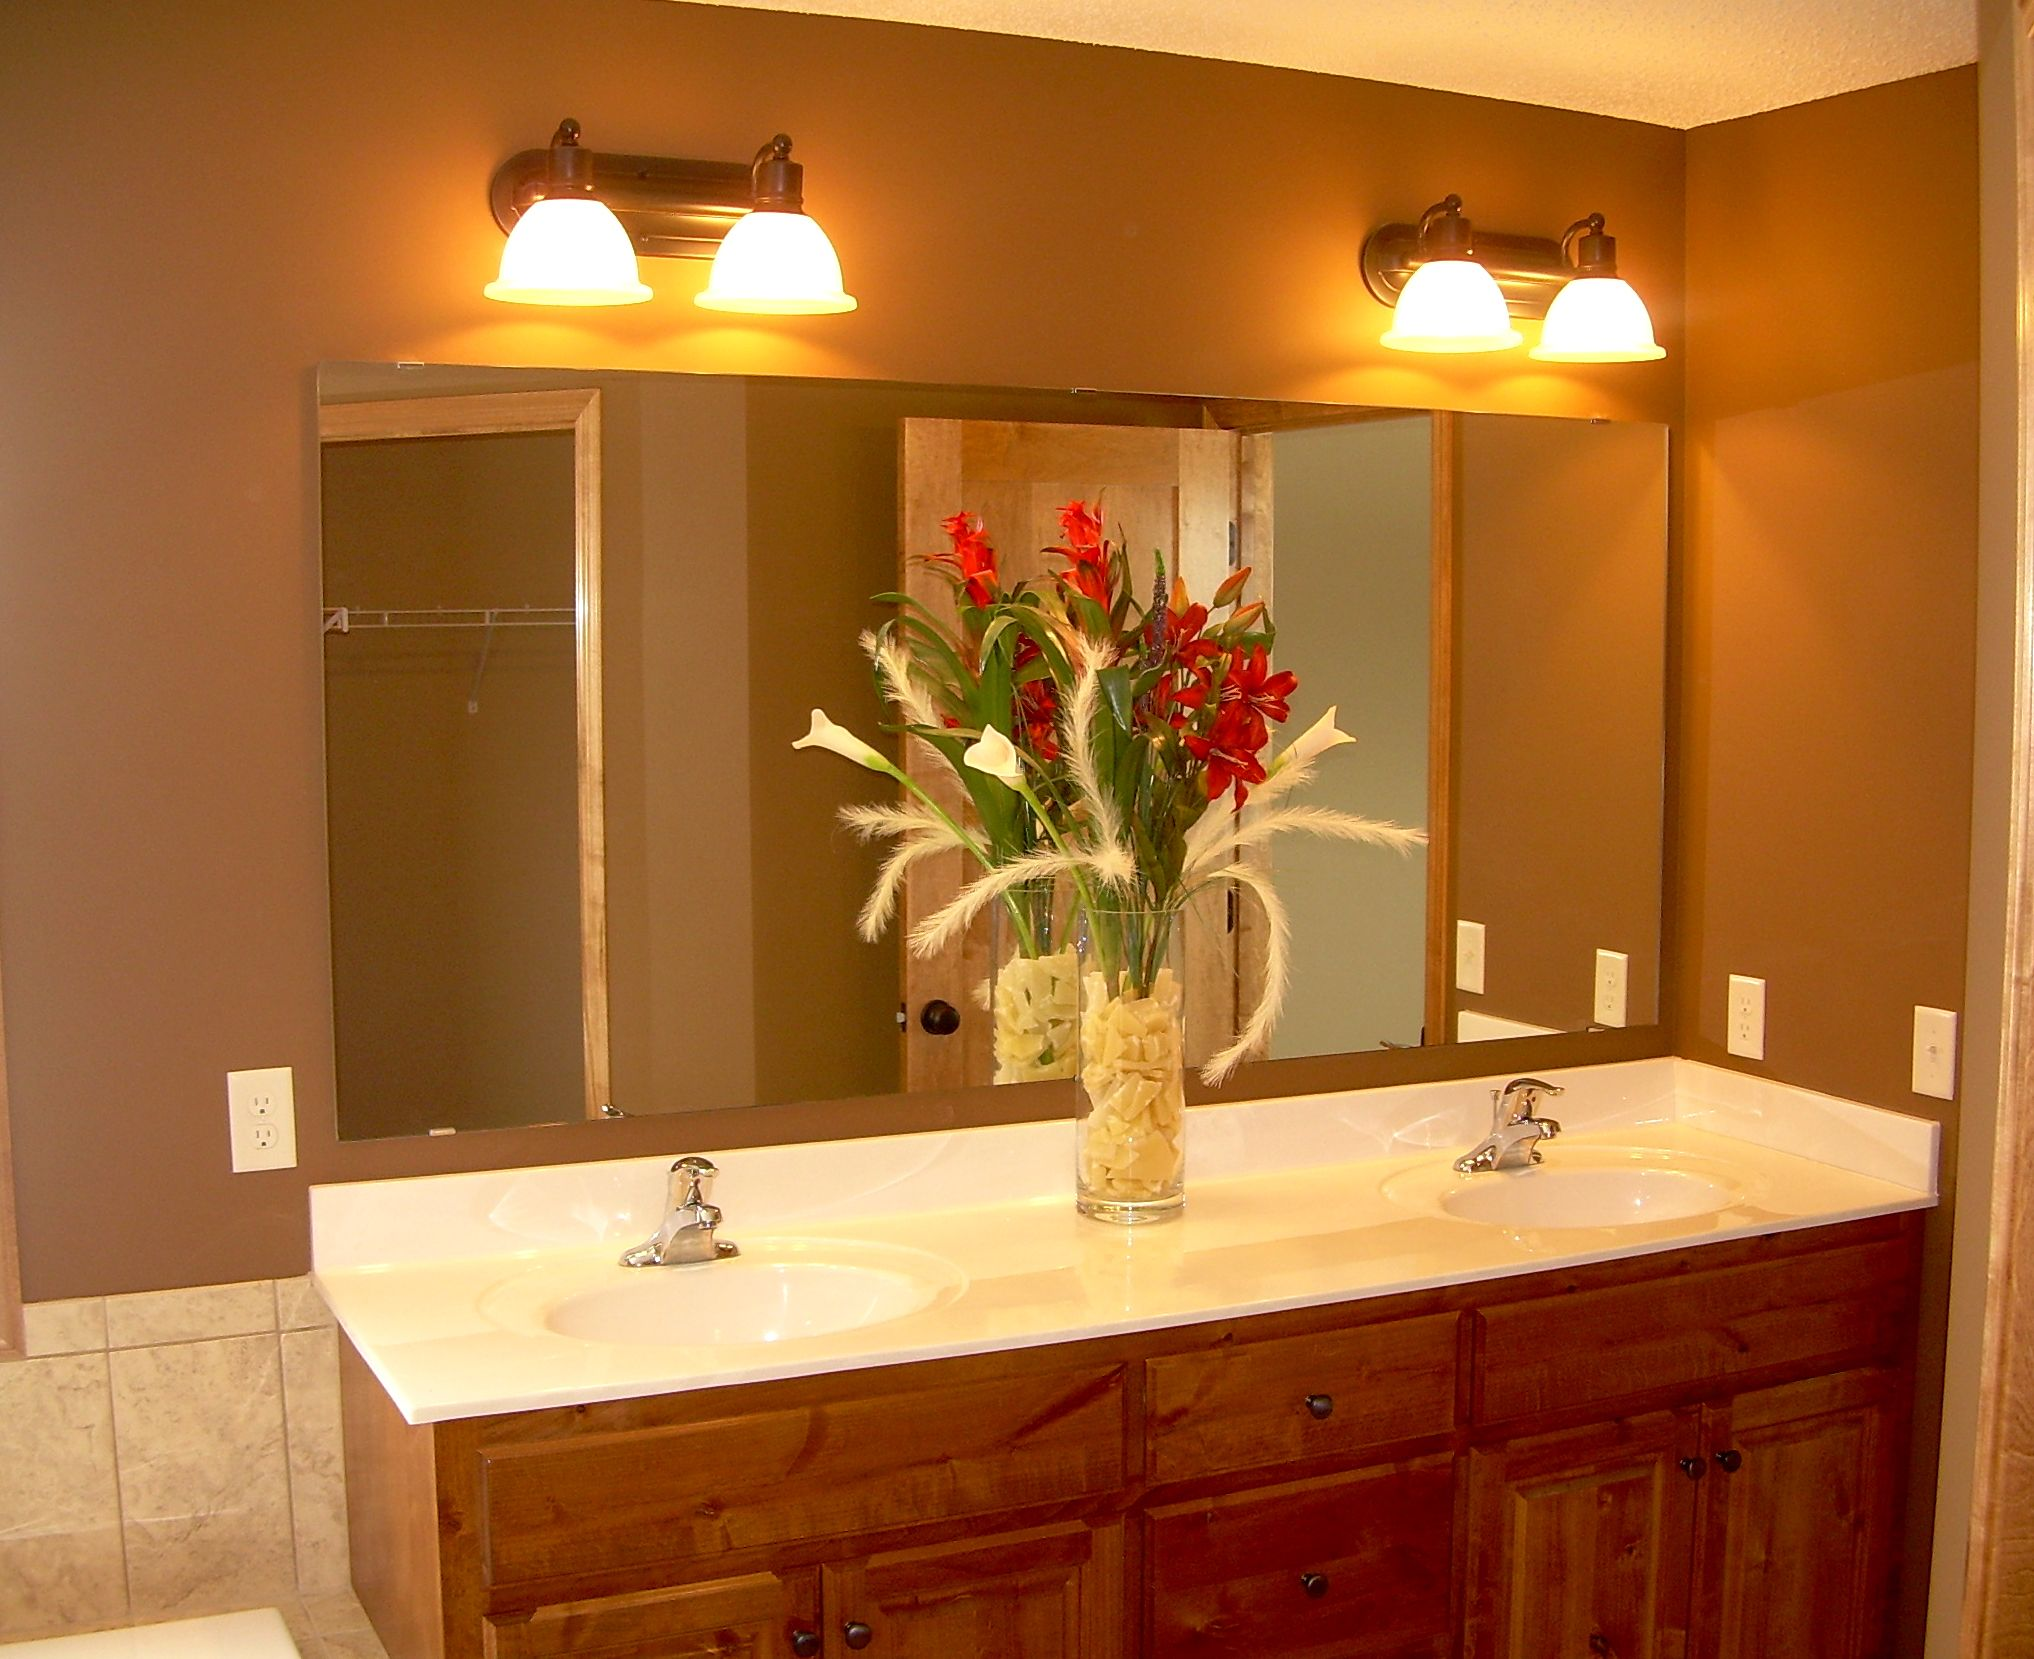 Modern bathroom mirror ideas - Bathroom Mirror Bathroom Wall Mirrors Without Frame Bathroom Mirrors With Wood Frame And Lights